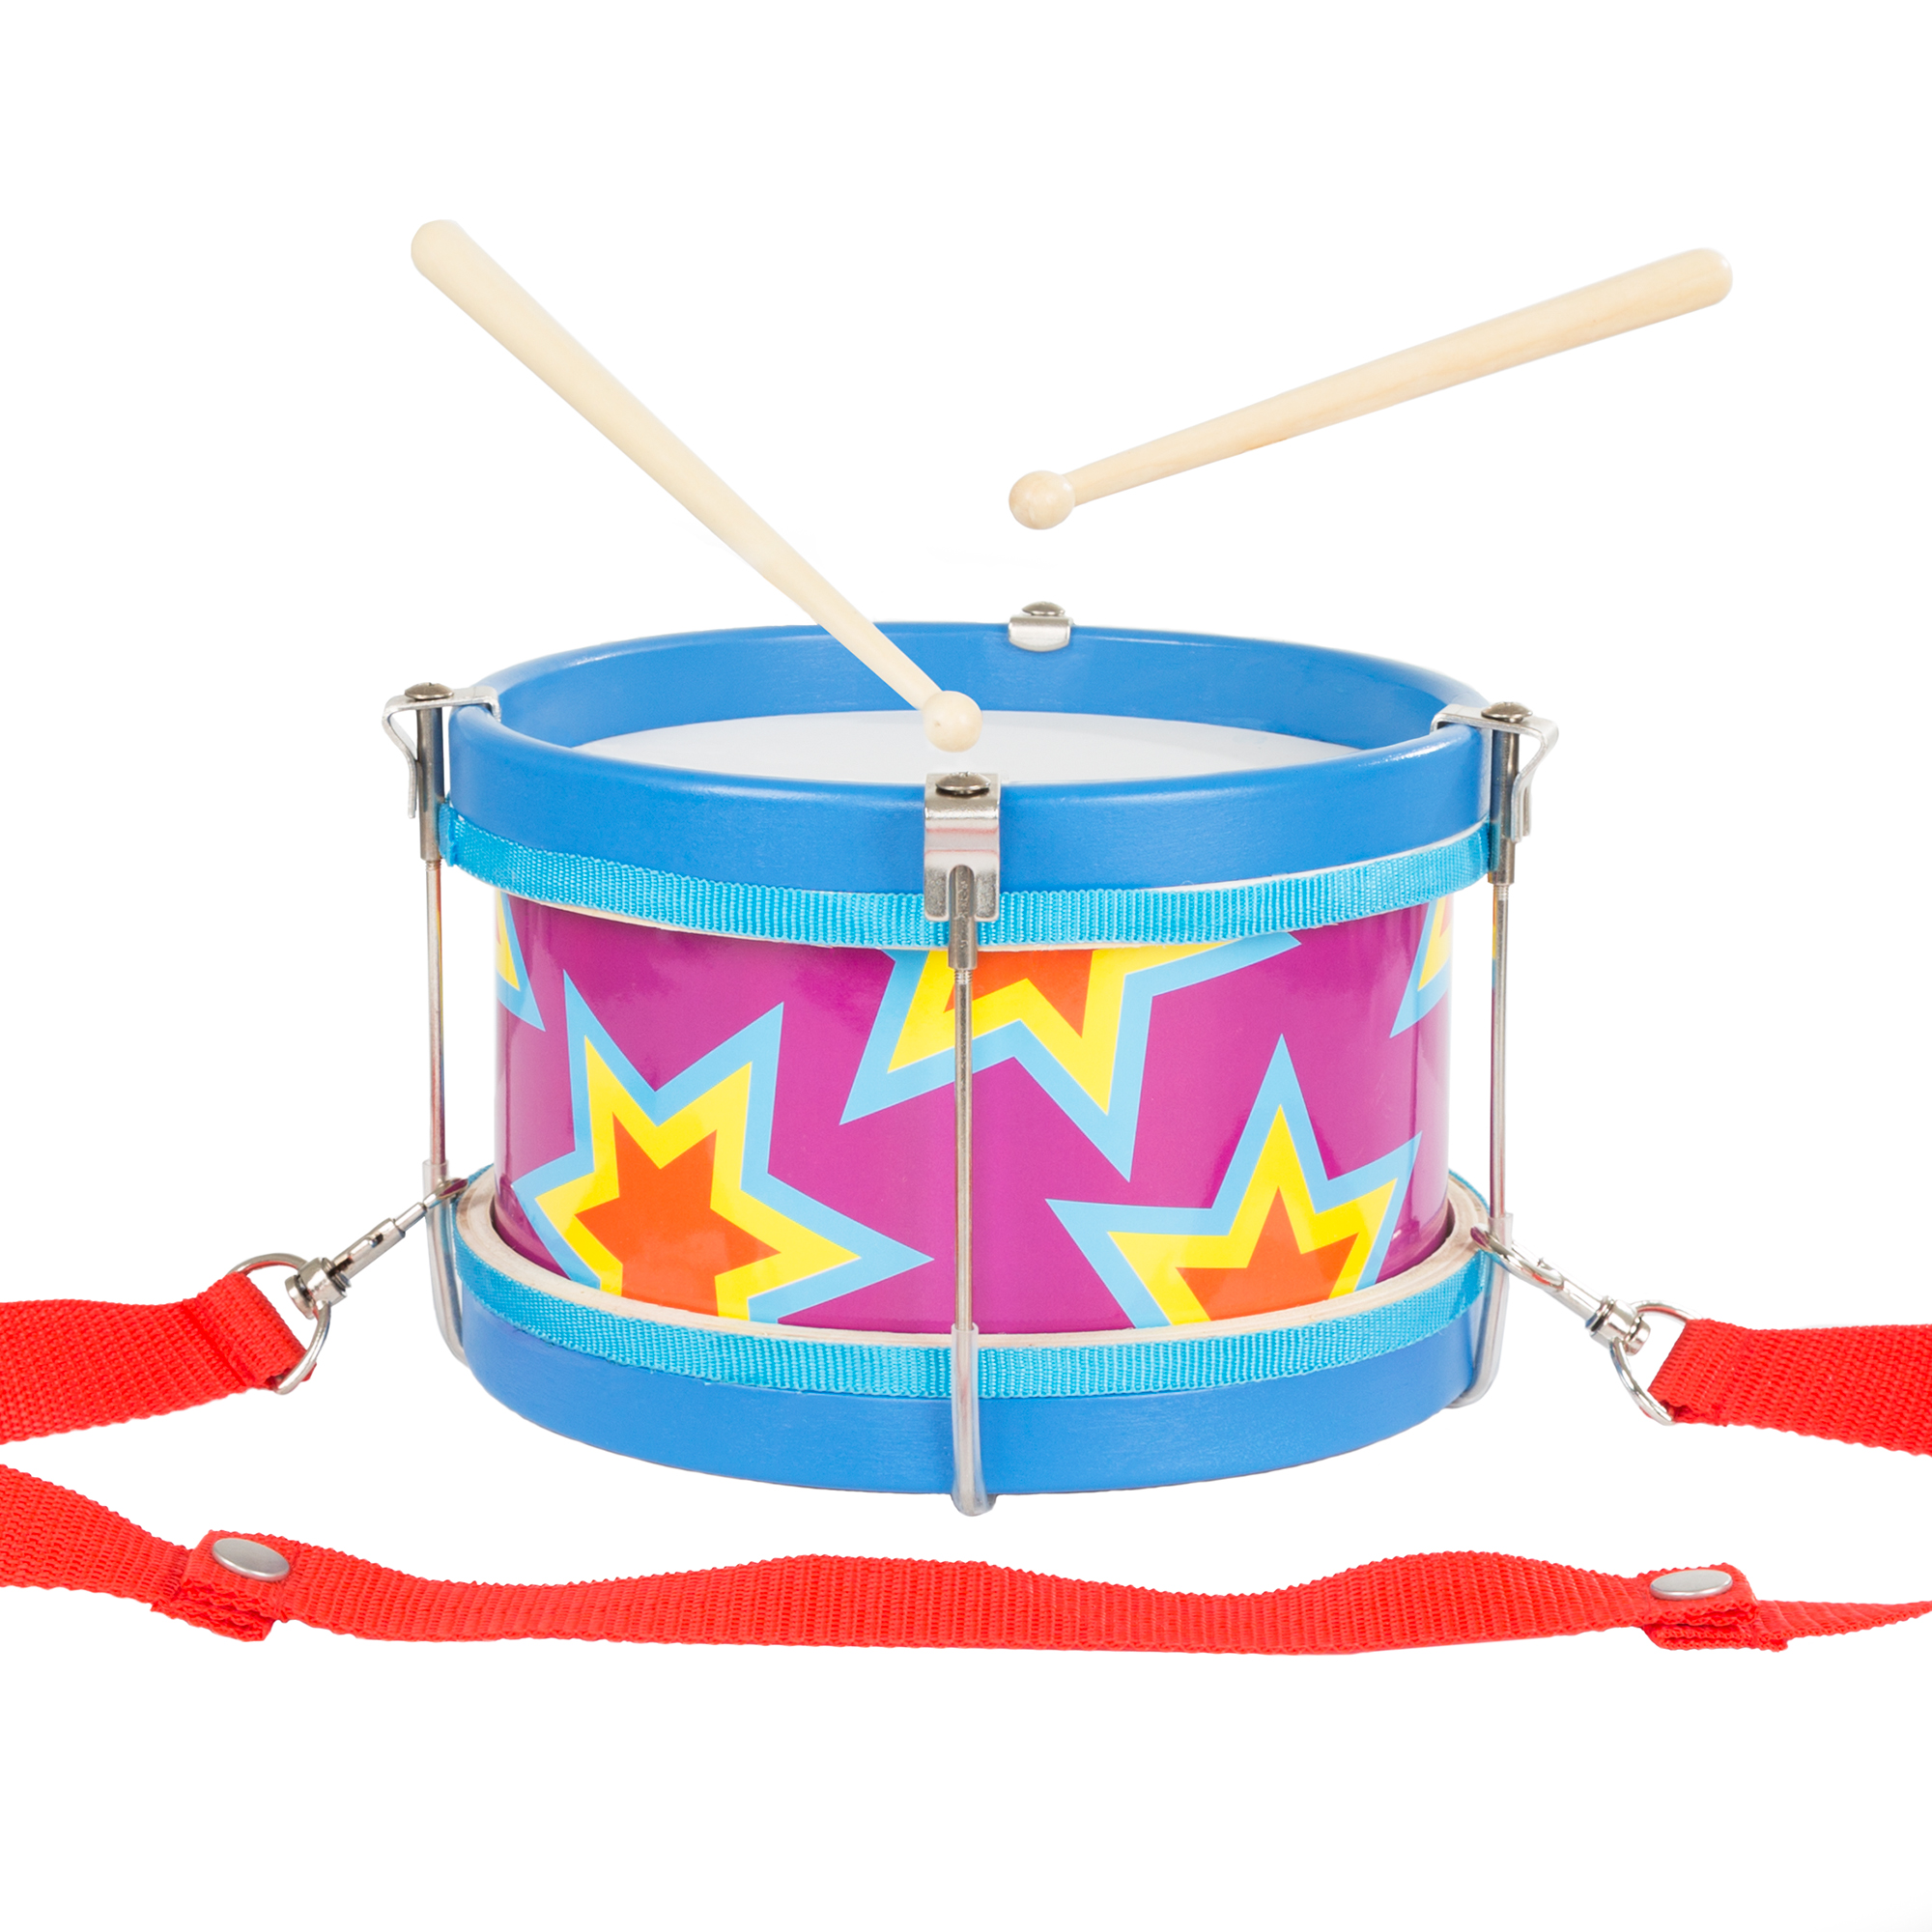 Toddler Drum Sets